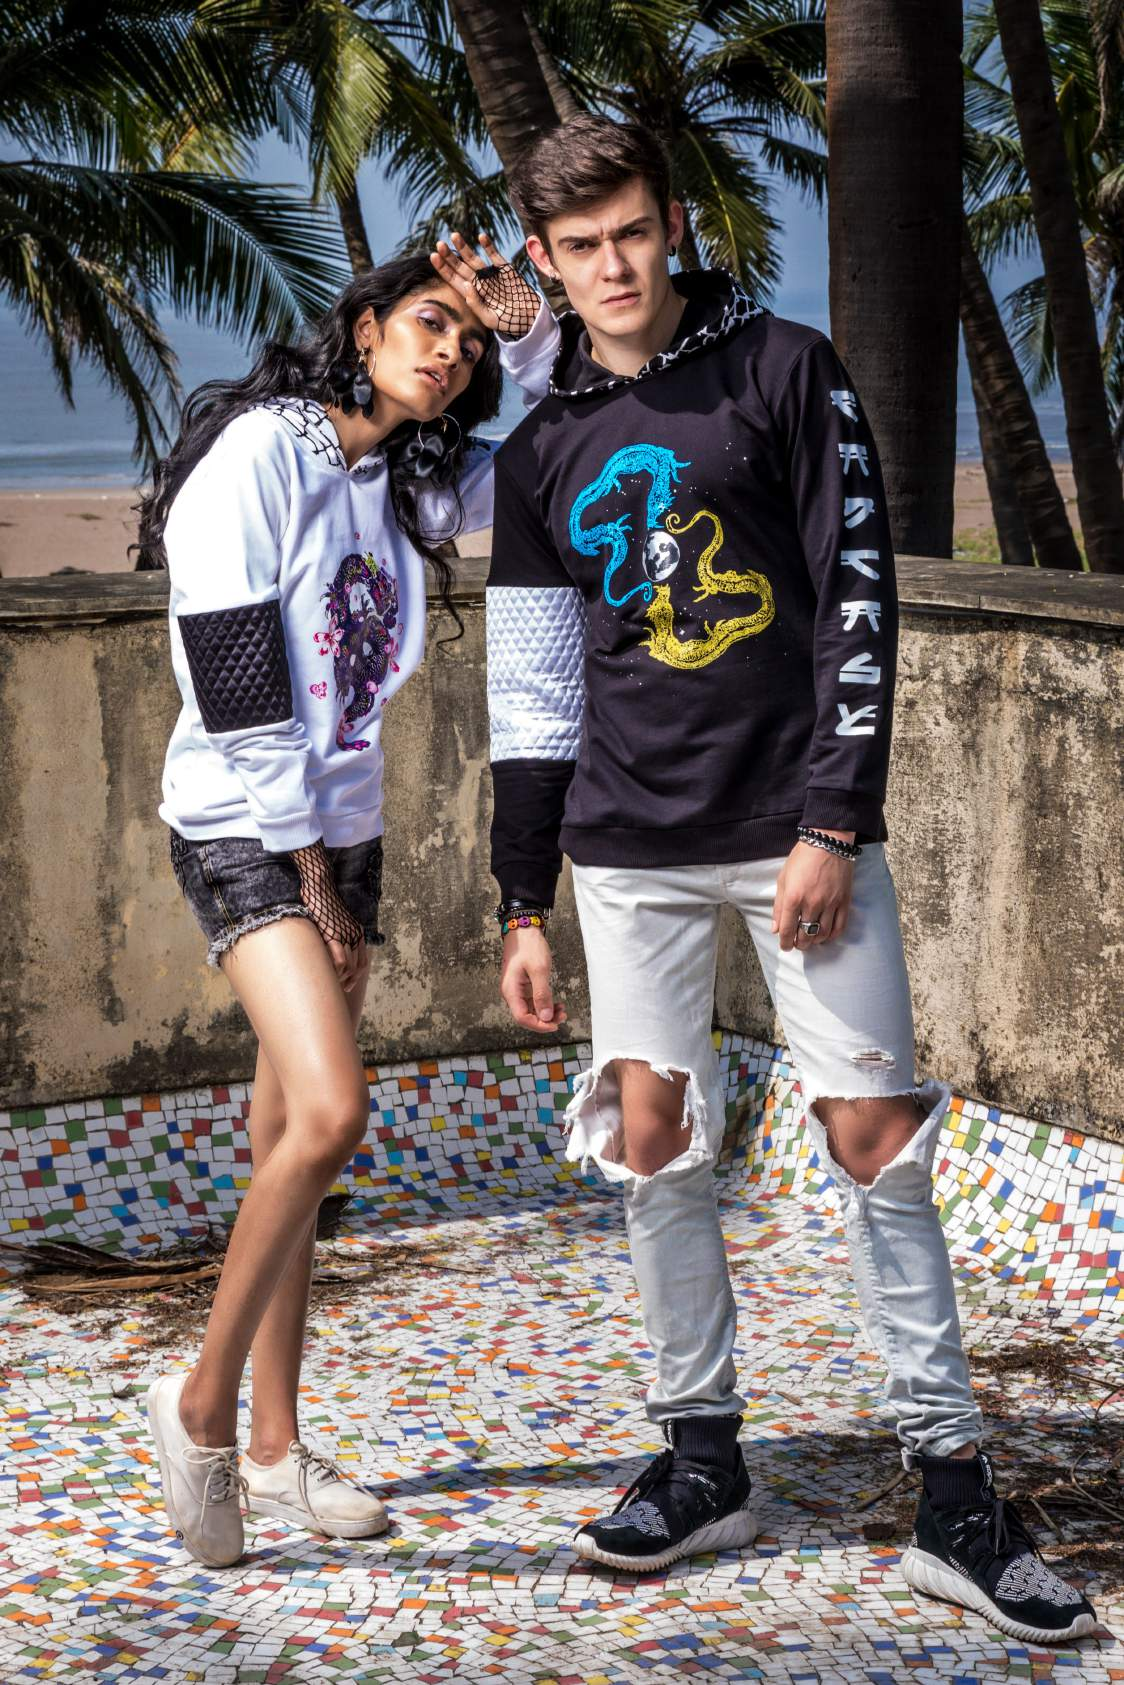 A girl wearing white hoodie with a dancing dragon printed on it with a pair of shorts and white shoes is standing with a guy wearing a black hoodie, knee torn denim and black shoes.